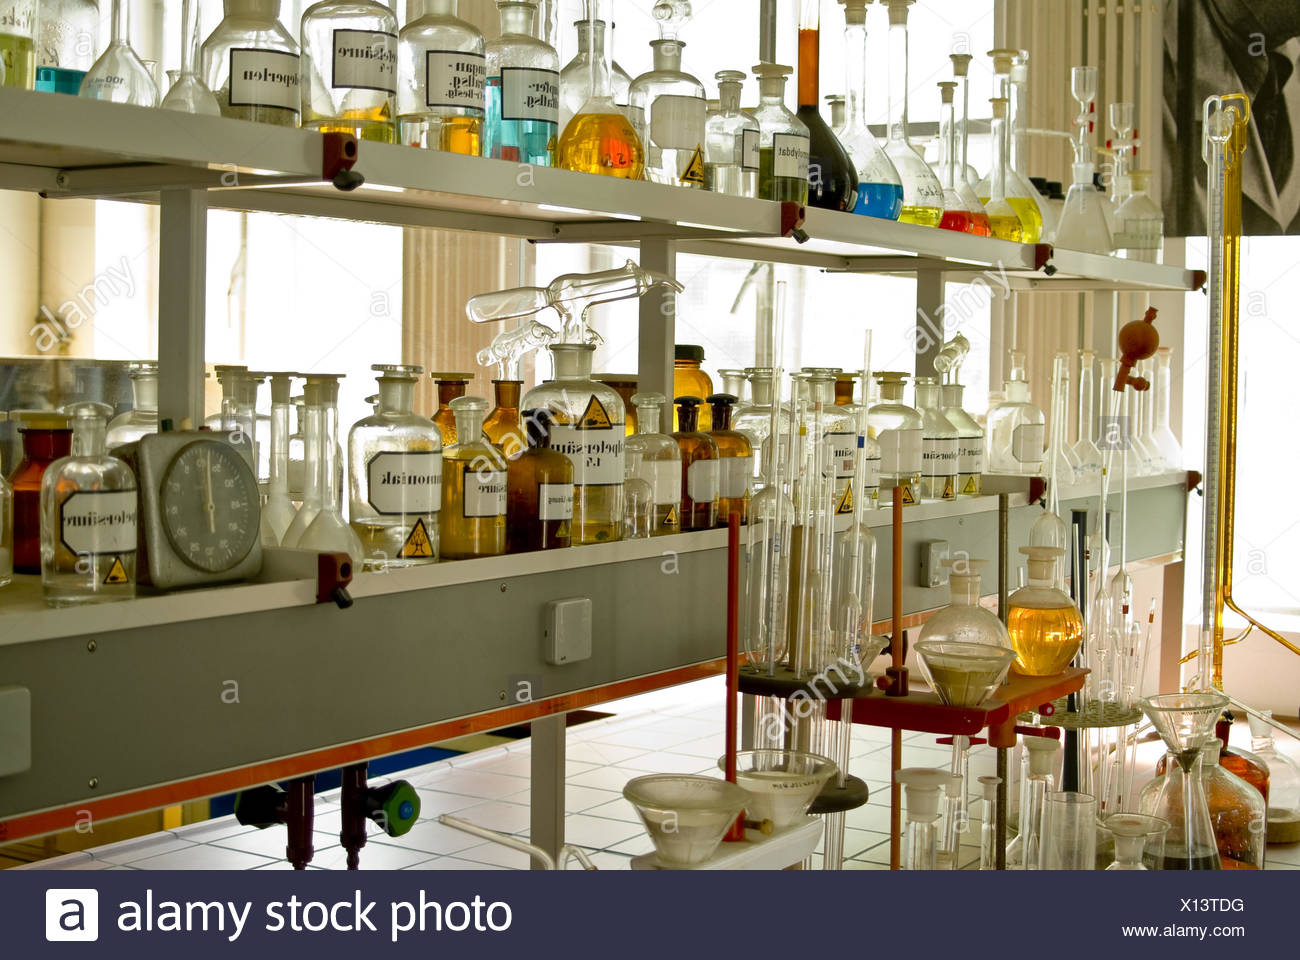 Chemical lab - Stock Image